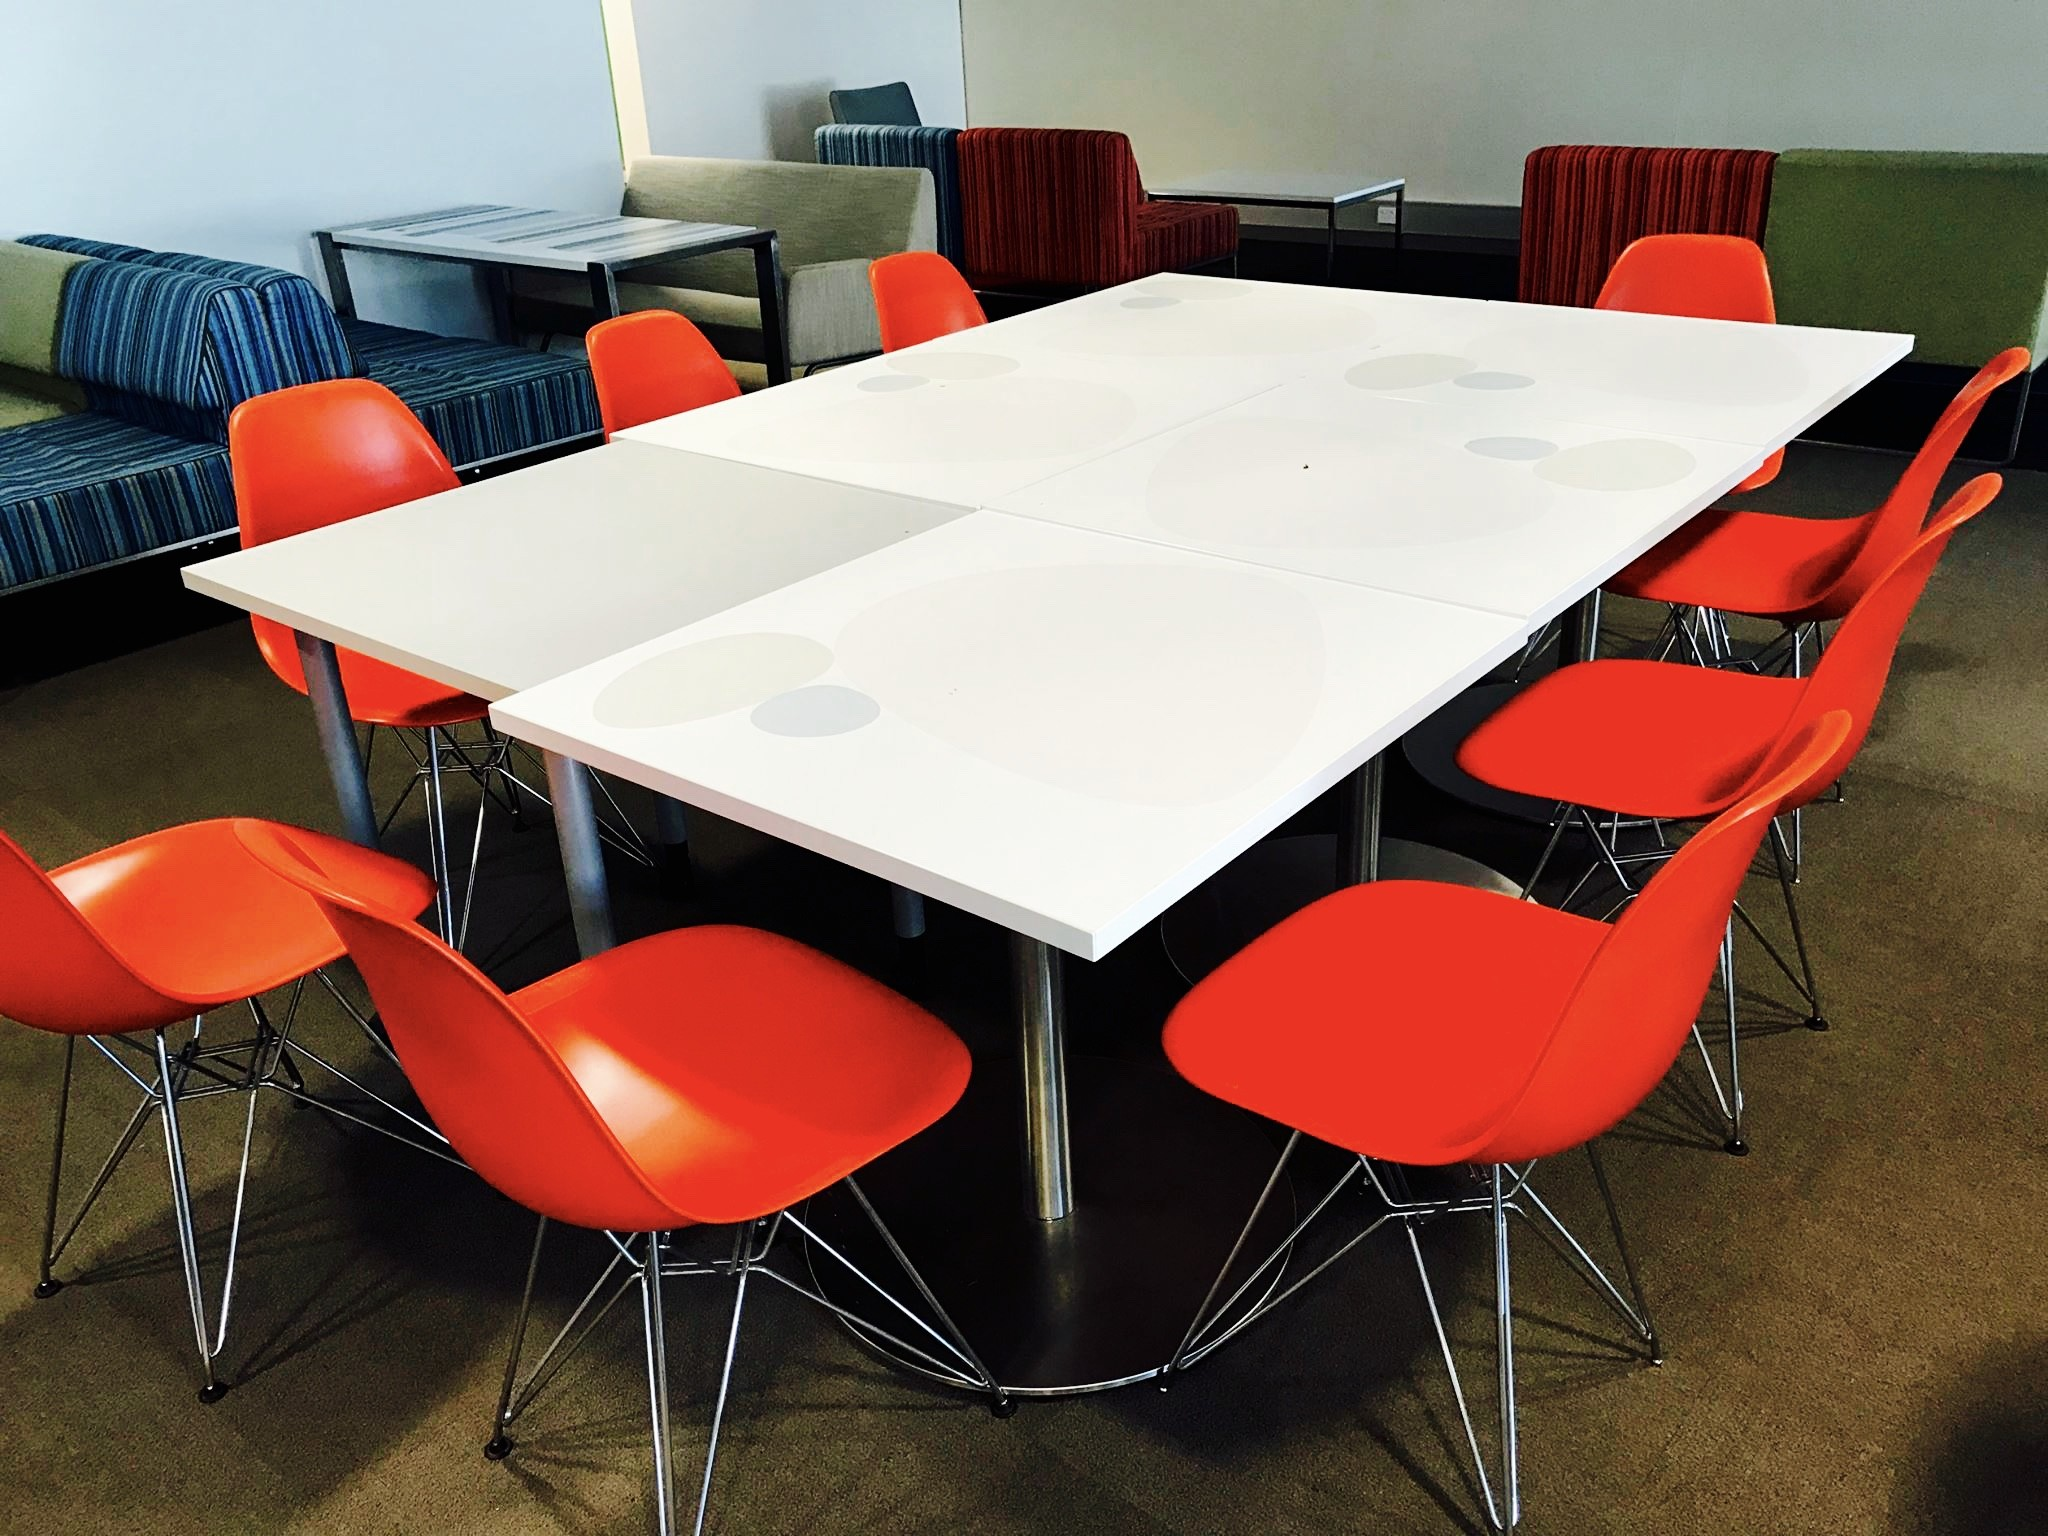 Used Office Furniture Melbourne Cbd Quality Used Office Furniture Office Supplies Furniture